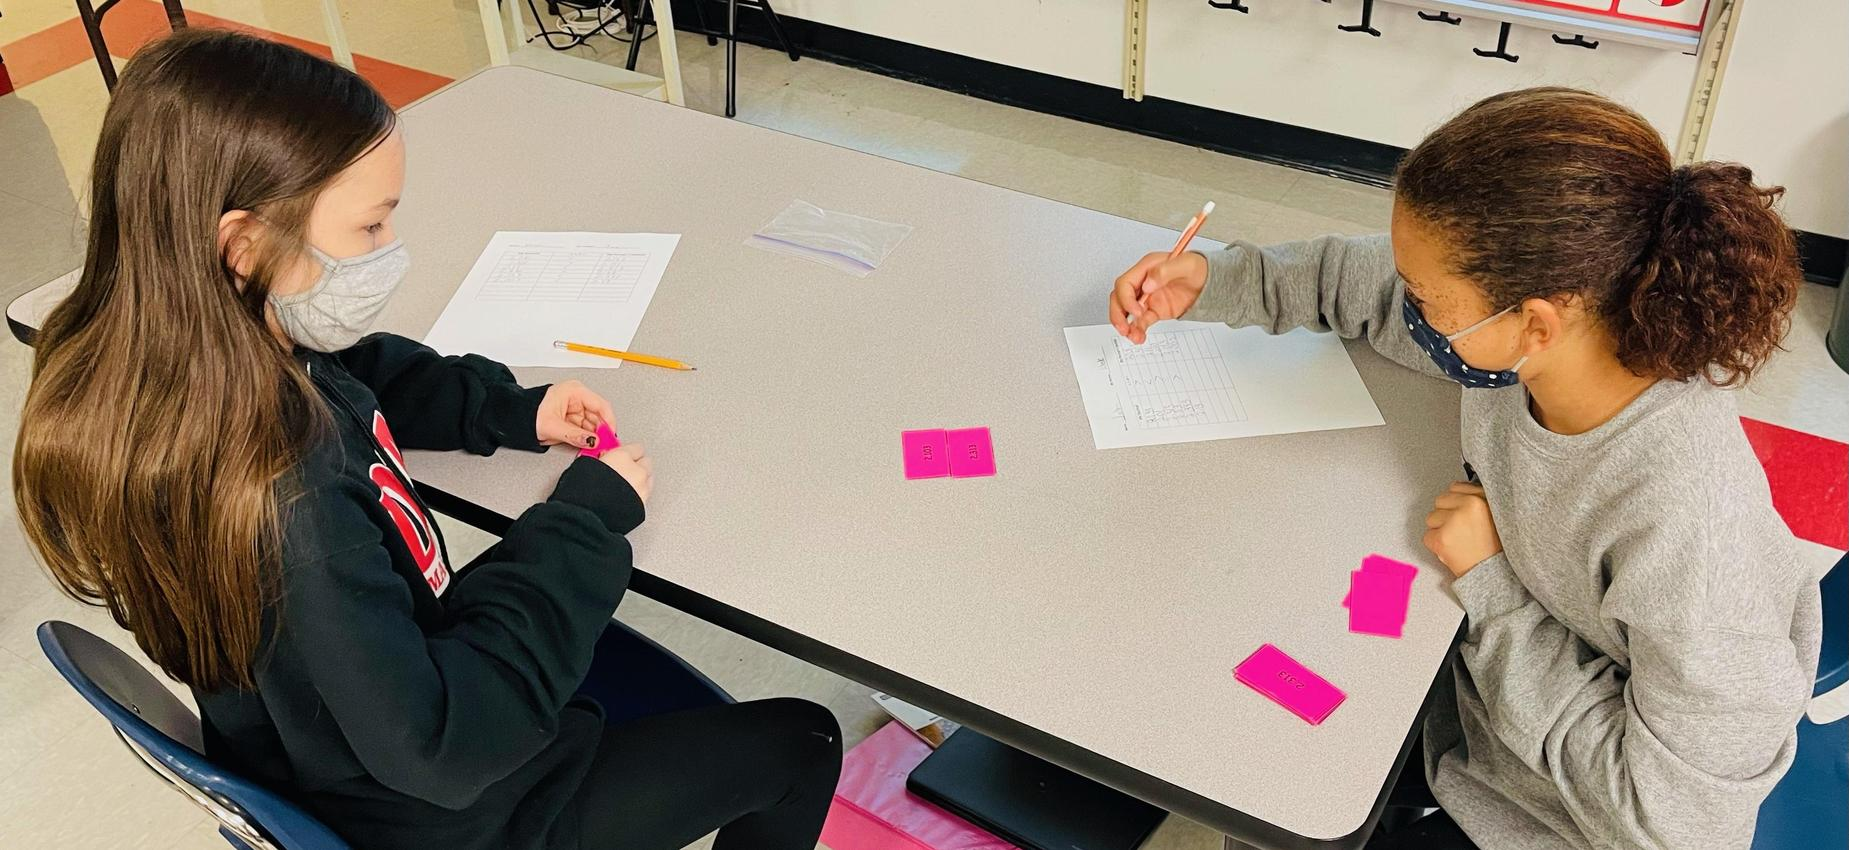 Two students work on math at a table.